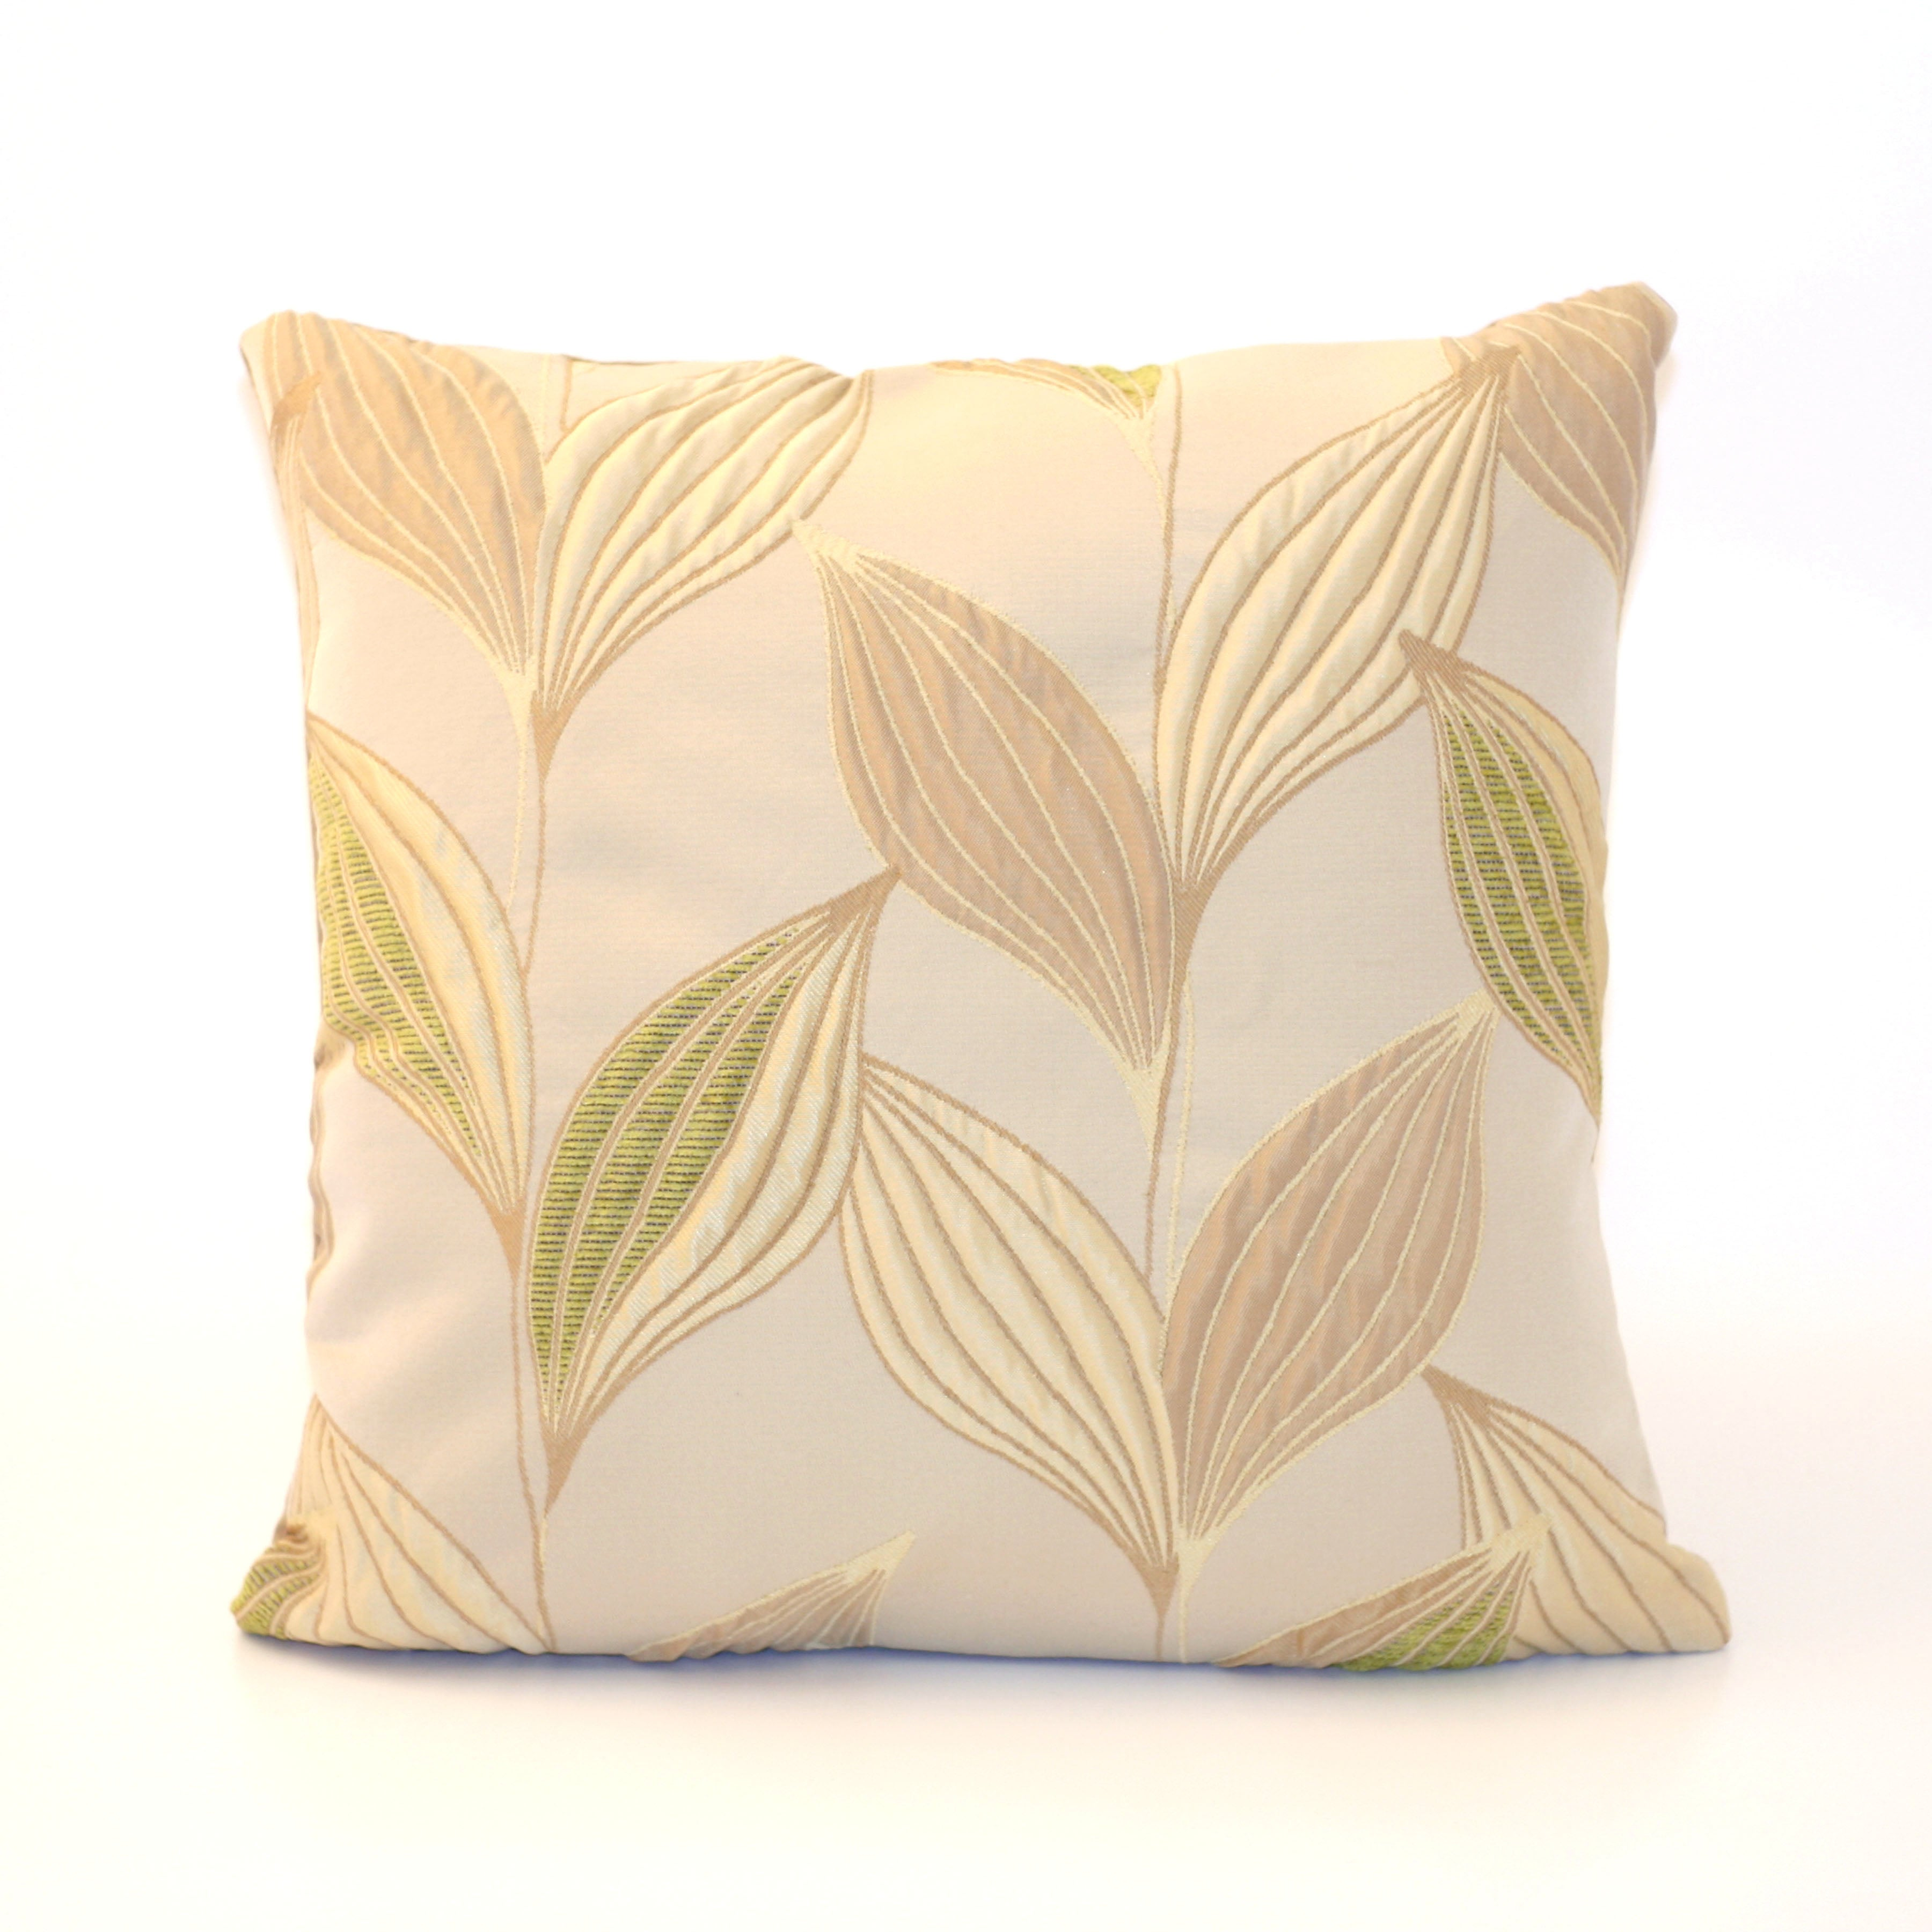 Maree Cushion Cover